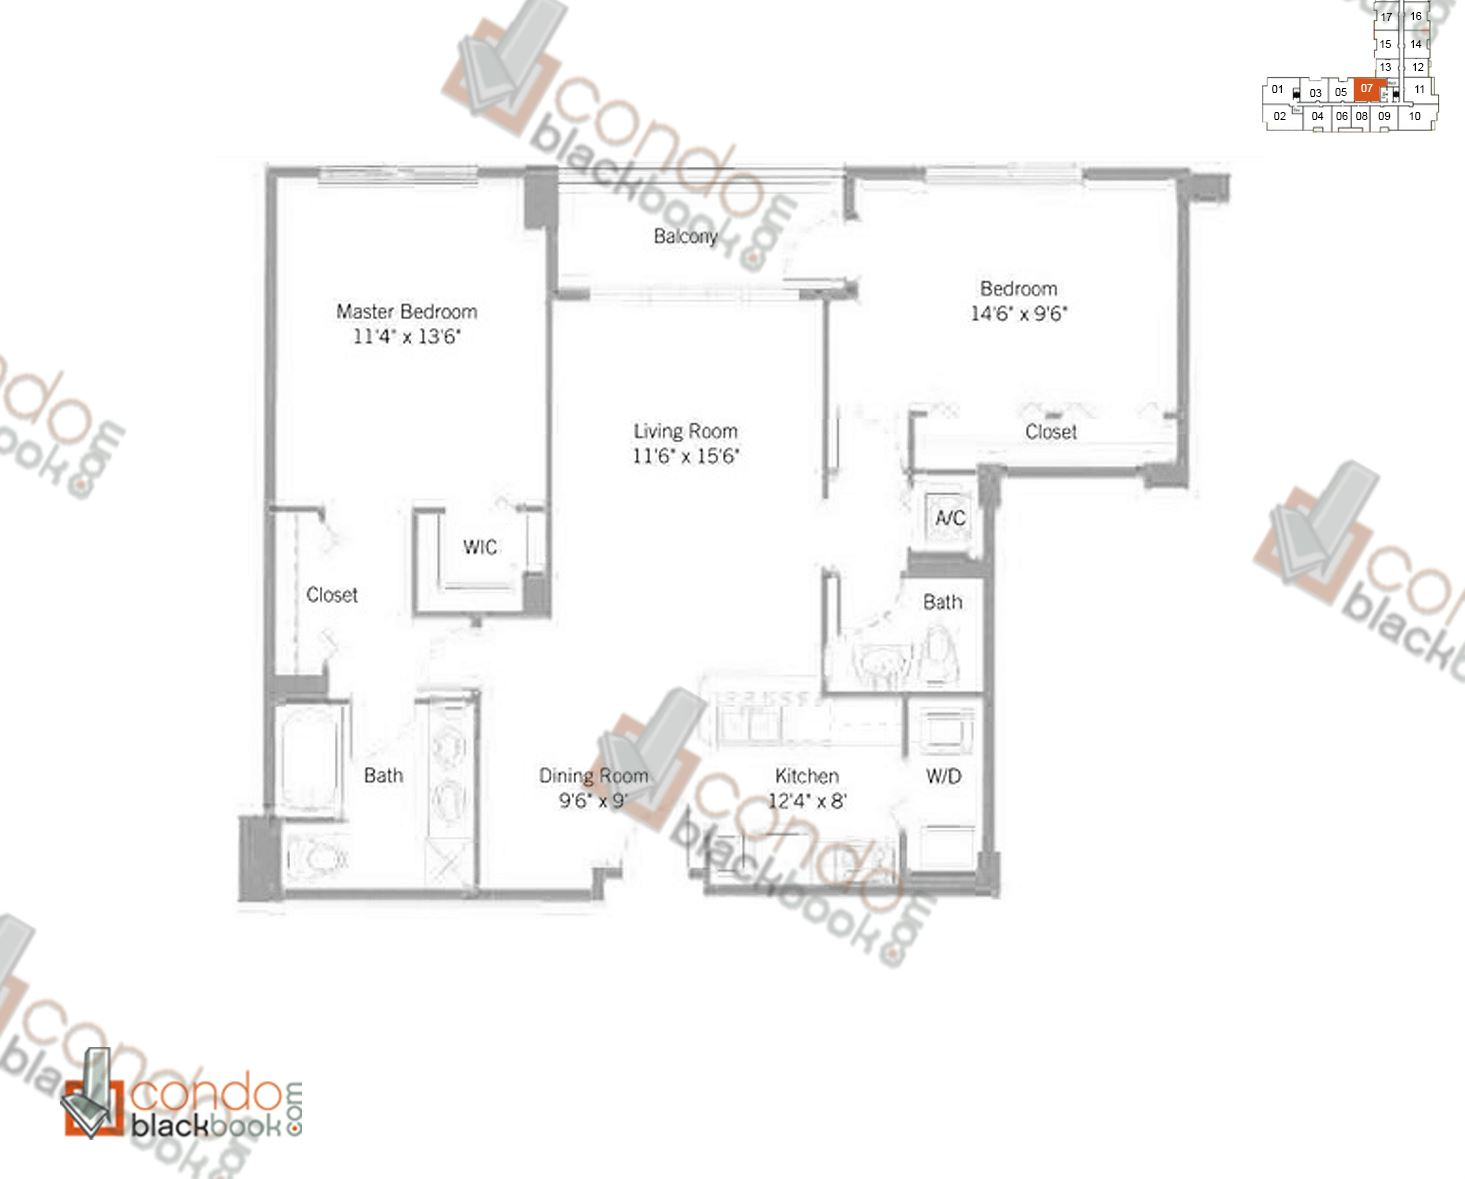 Floor plan for Cite Edgewater Miami, model B7, line 07, 2/1.5 bedrooms, 981 sq ft